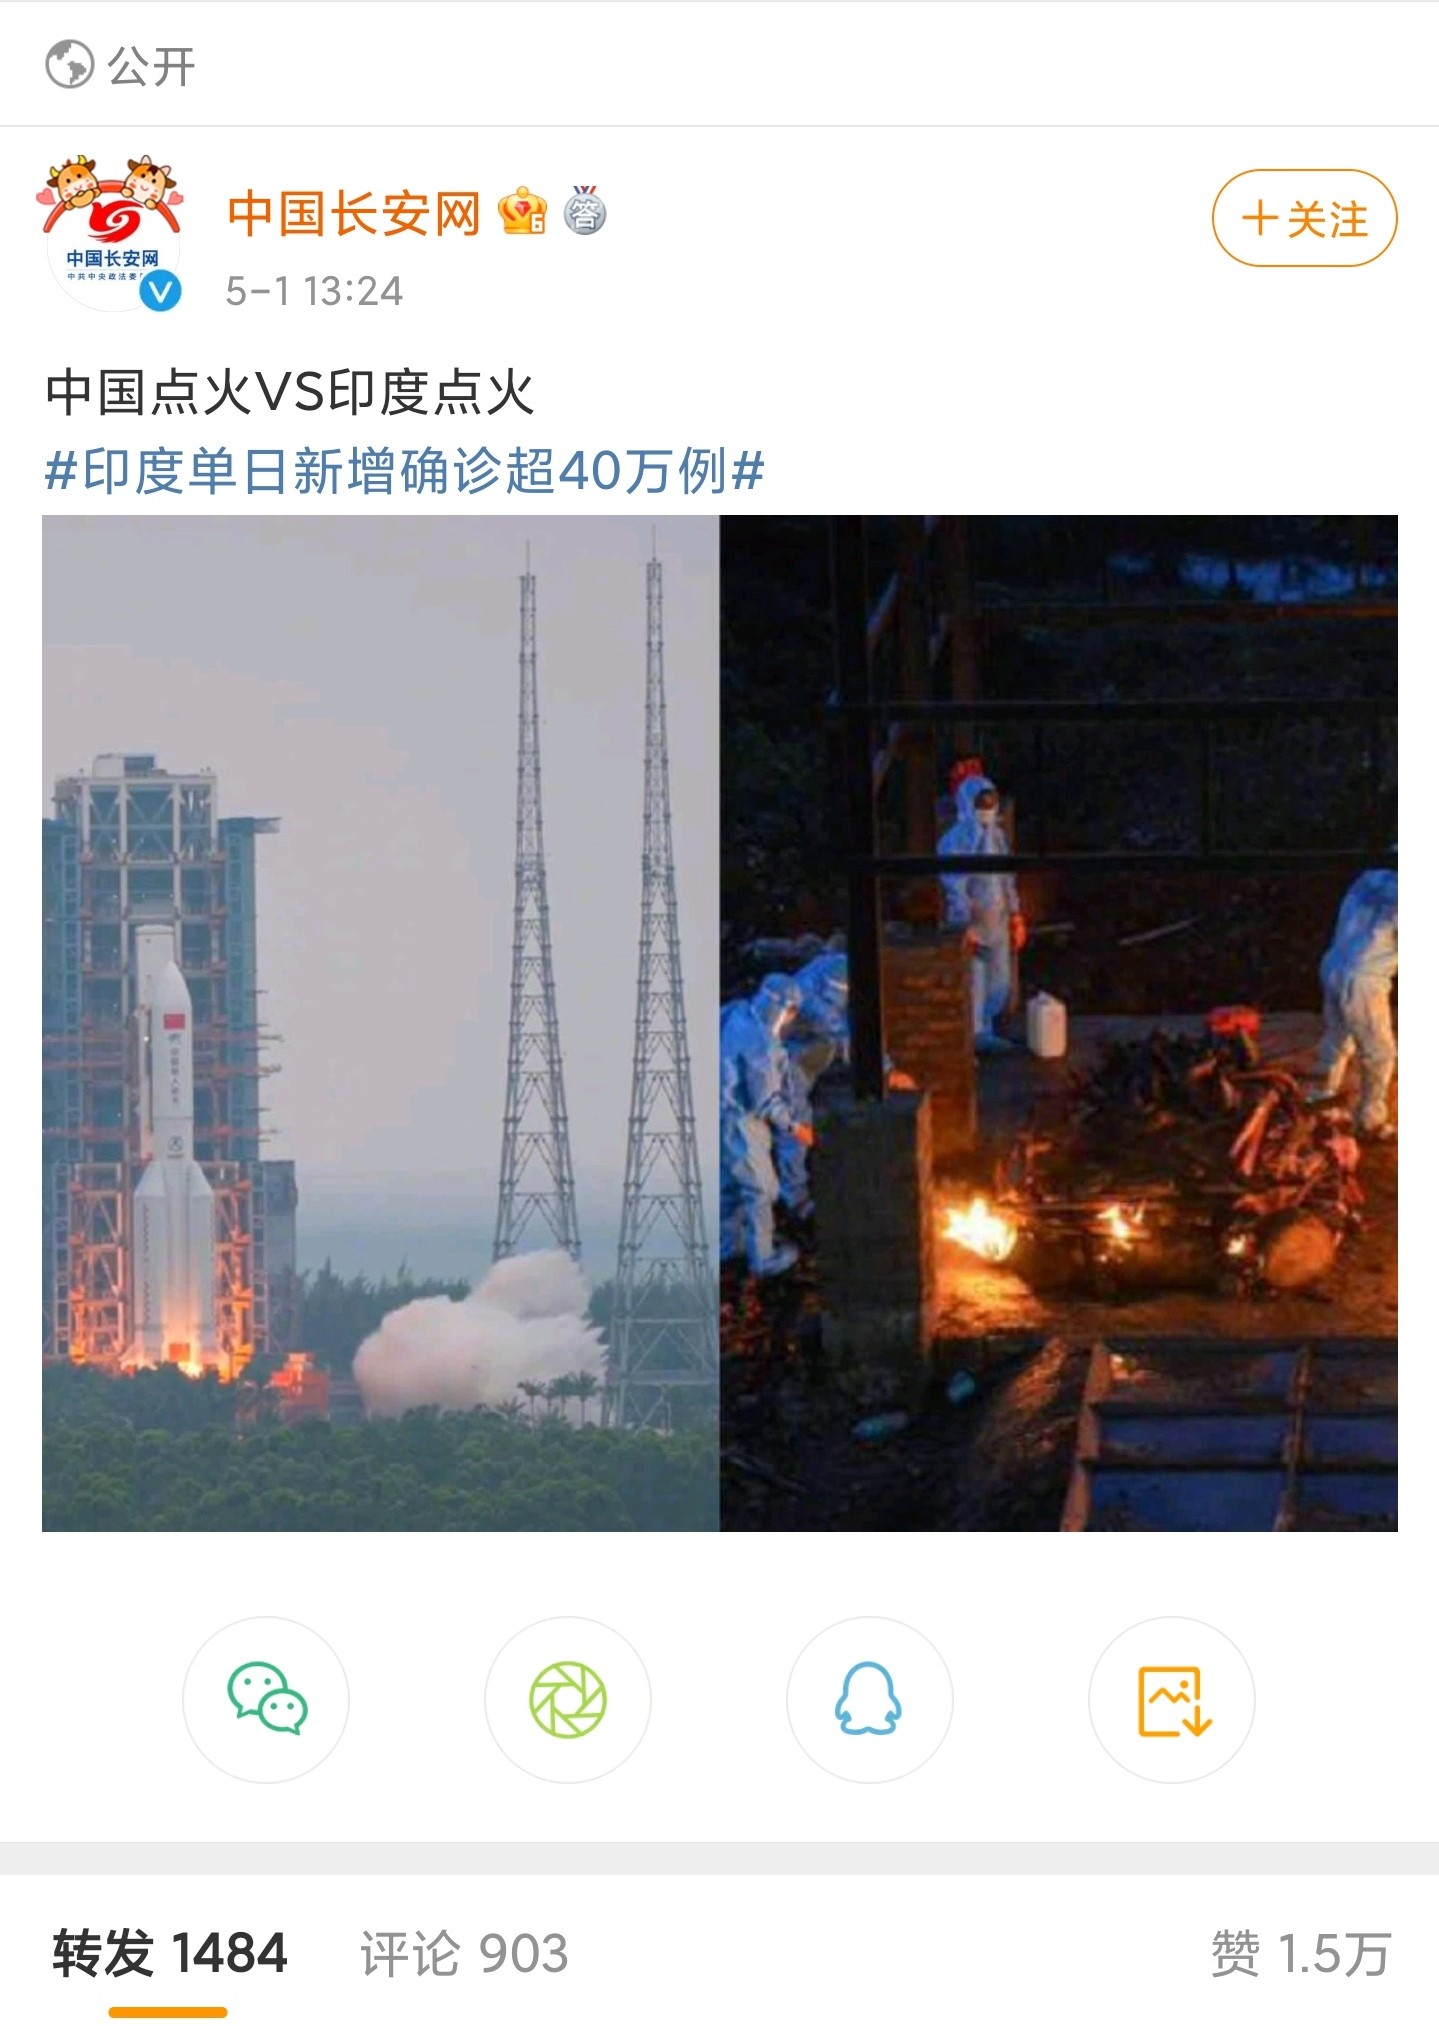 A social media post juxtaposes a Chinese rocket taking of with a mass cremation in India